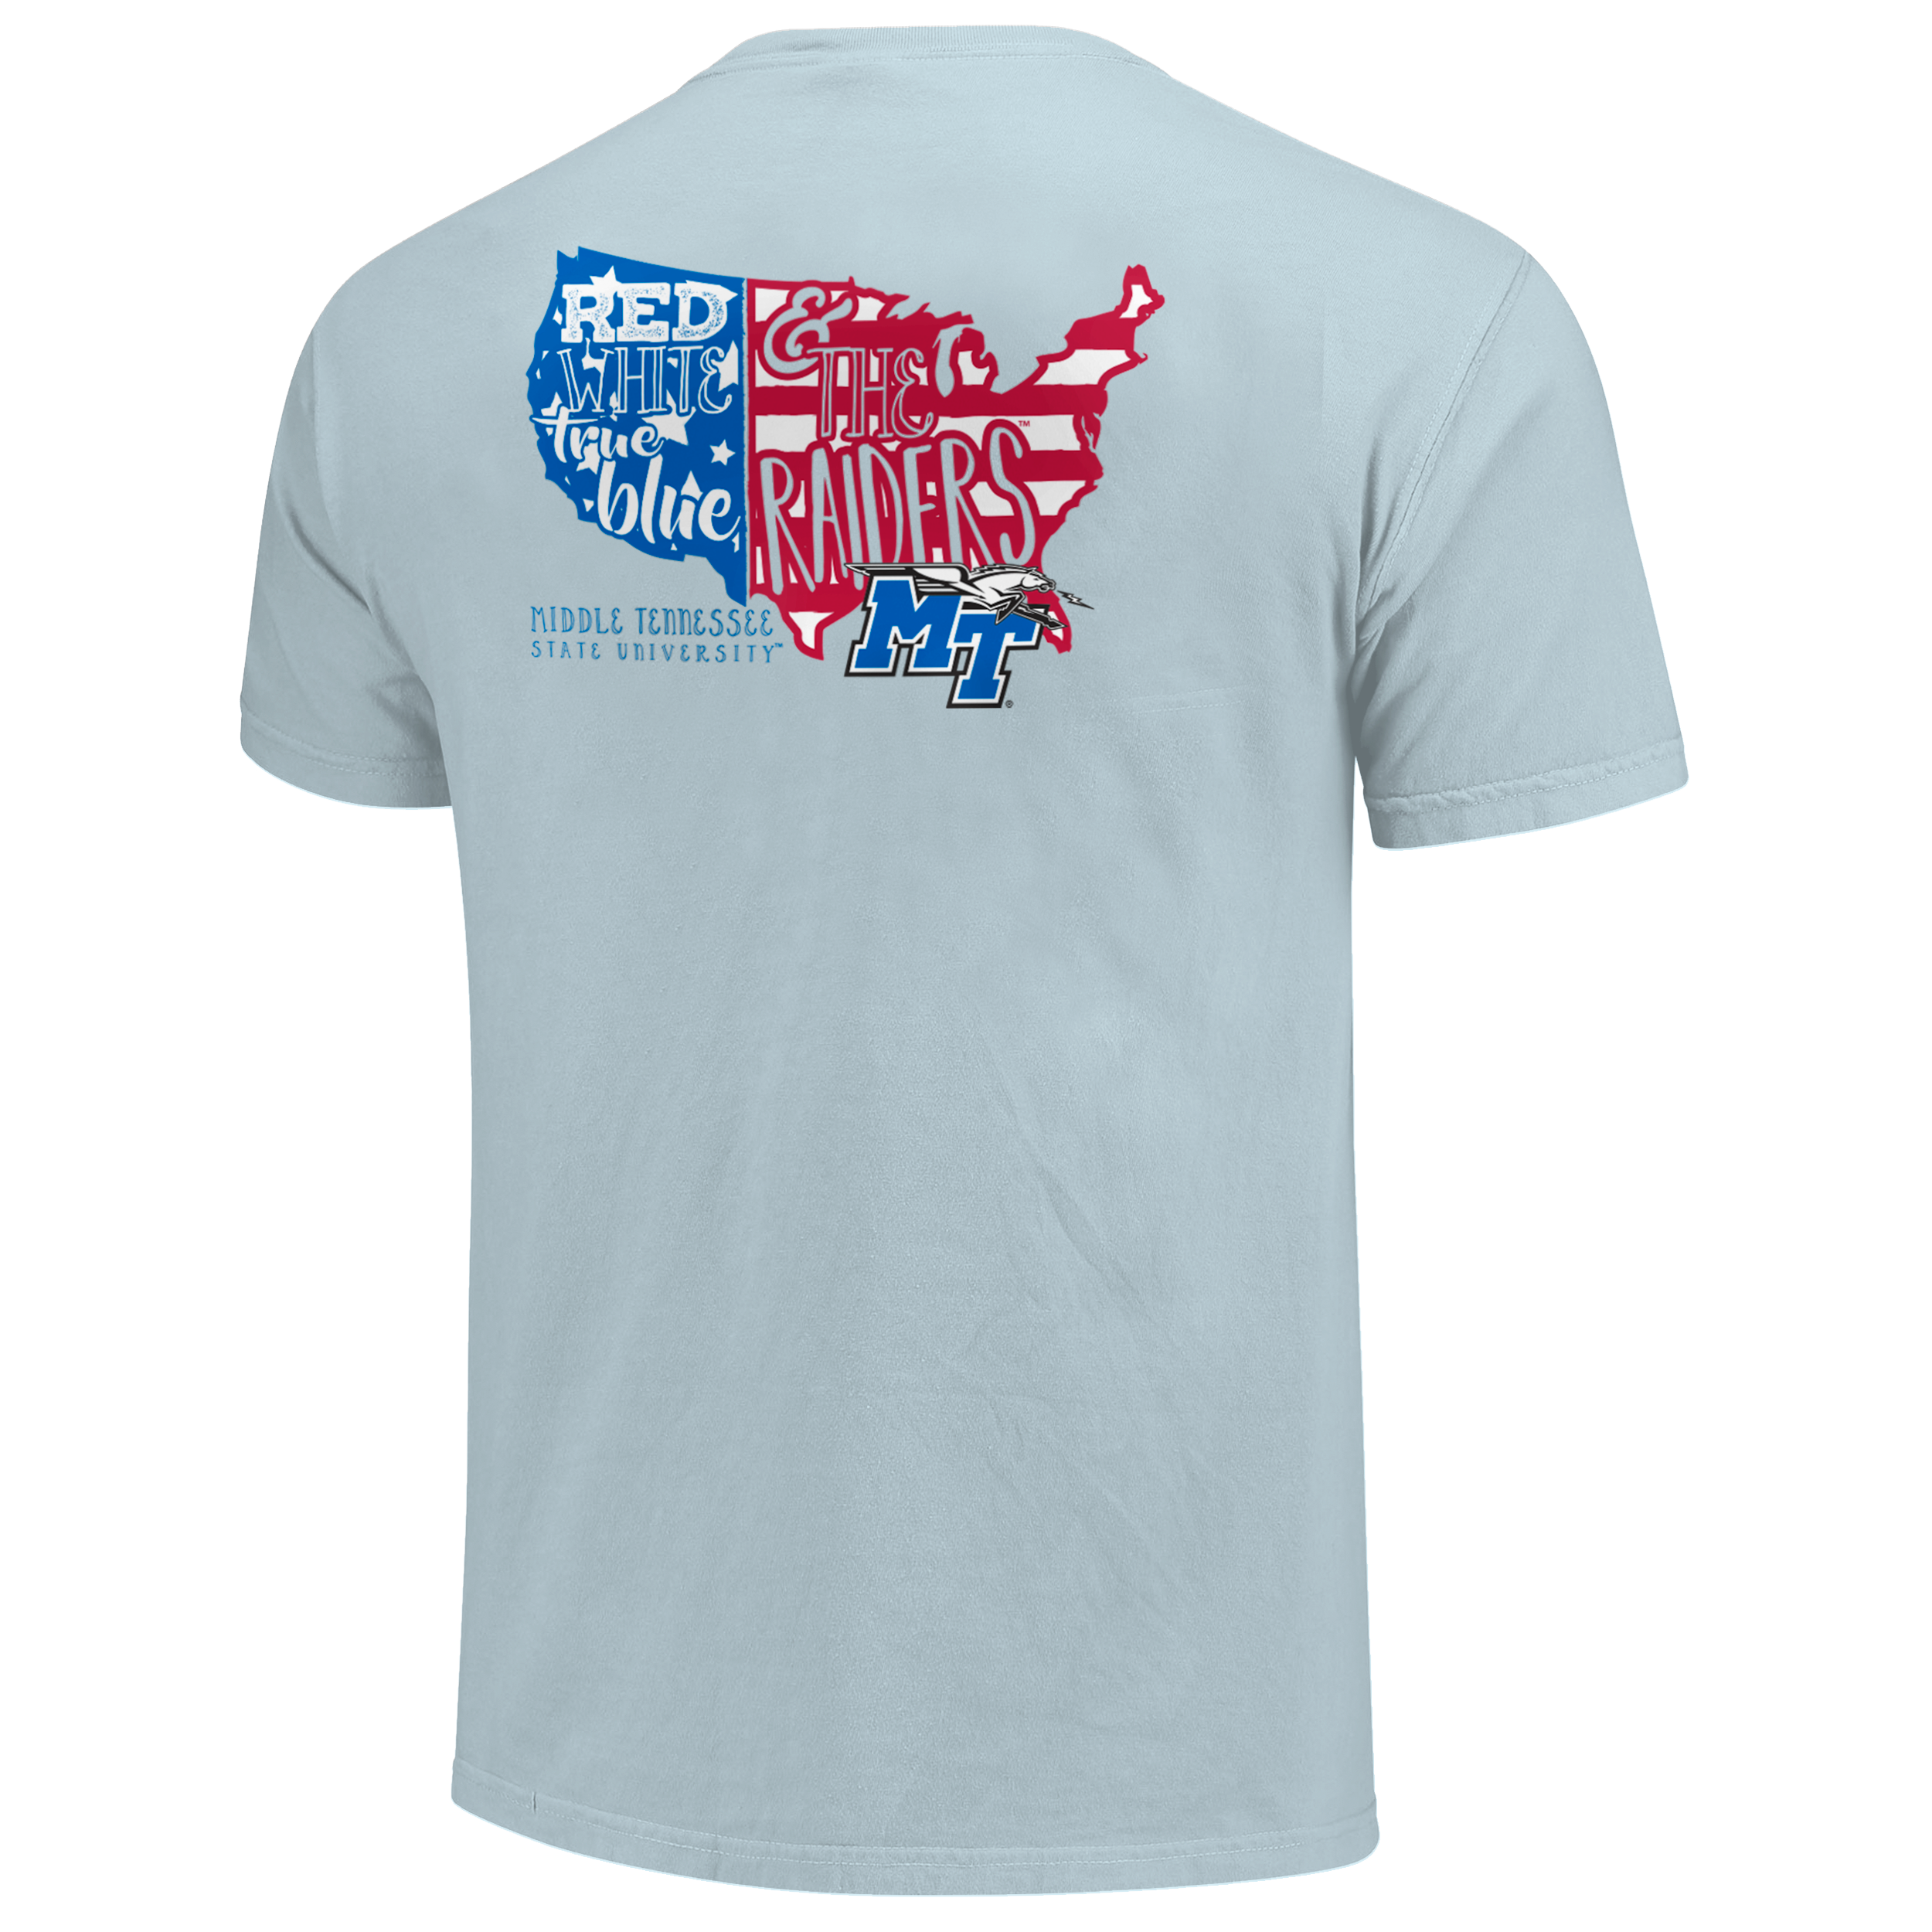 Red White & True Blue Raiders Comfort Colors Shirt